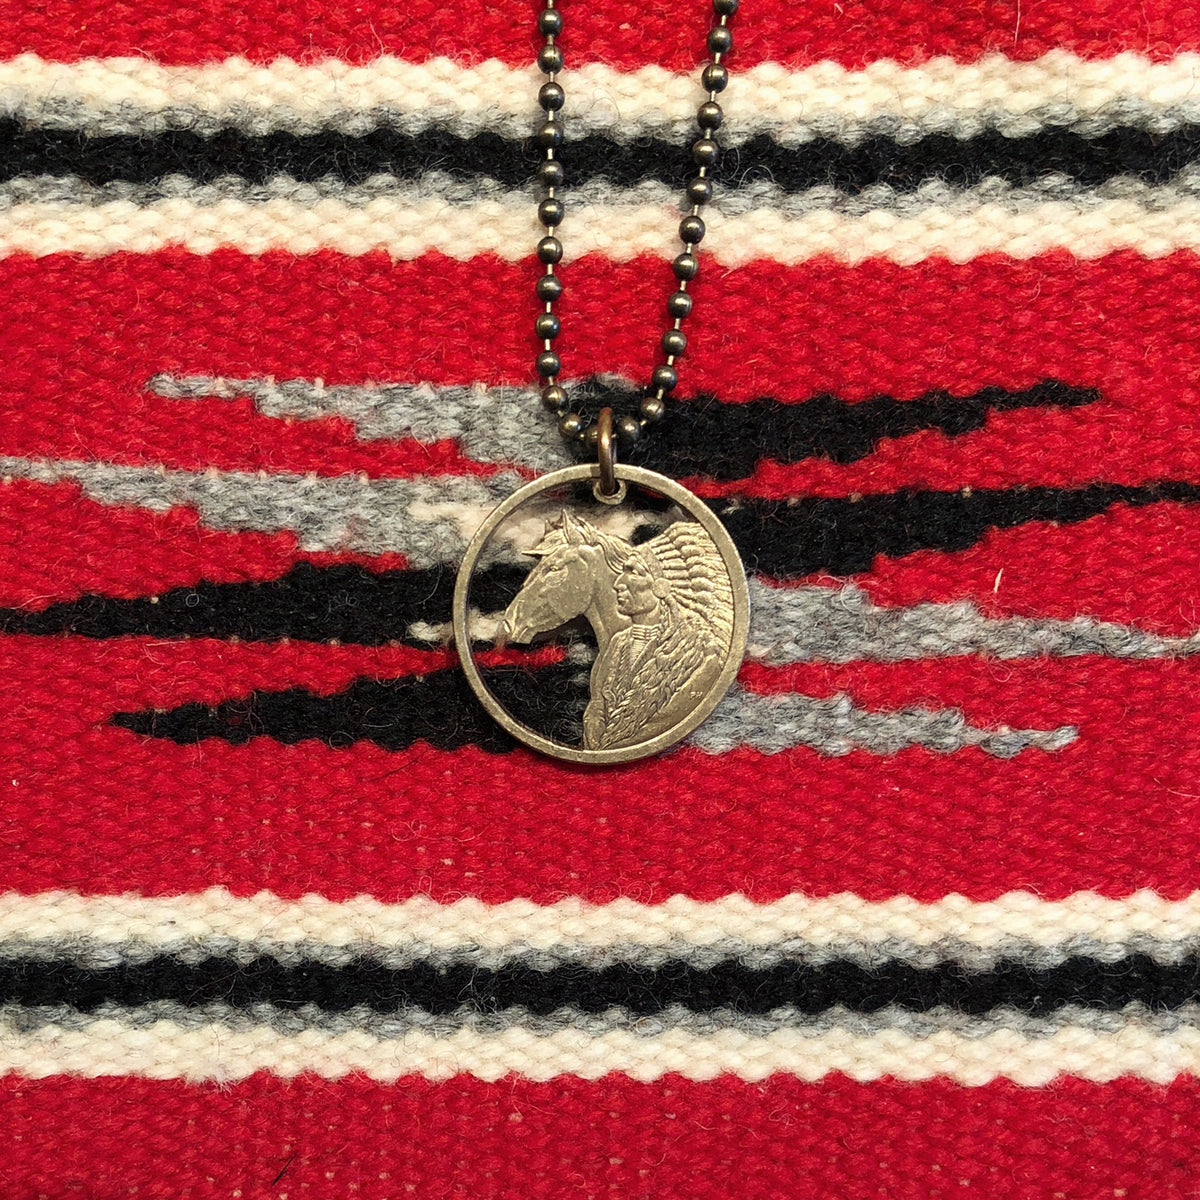 A TSY Hand-Cut Native American Indian + Horse Bronze Coin Pendant Necklaces, Jewelry, NEW!